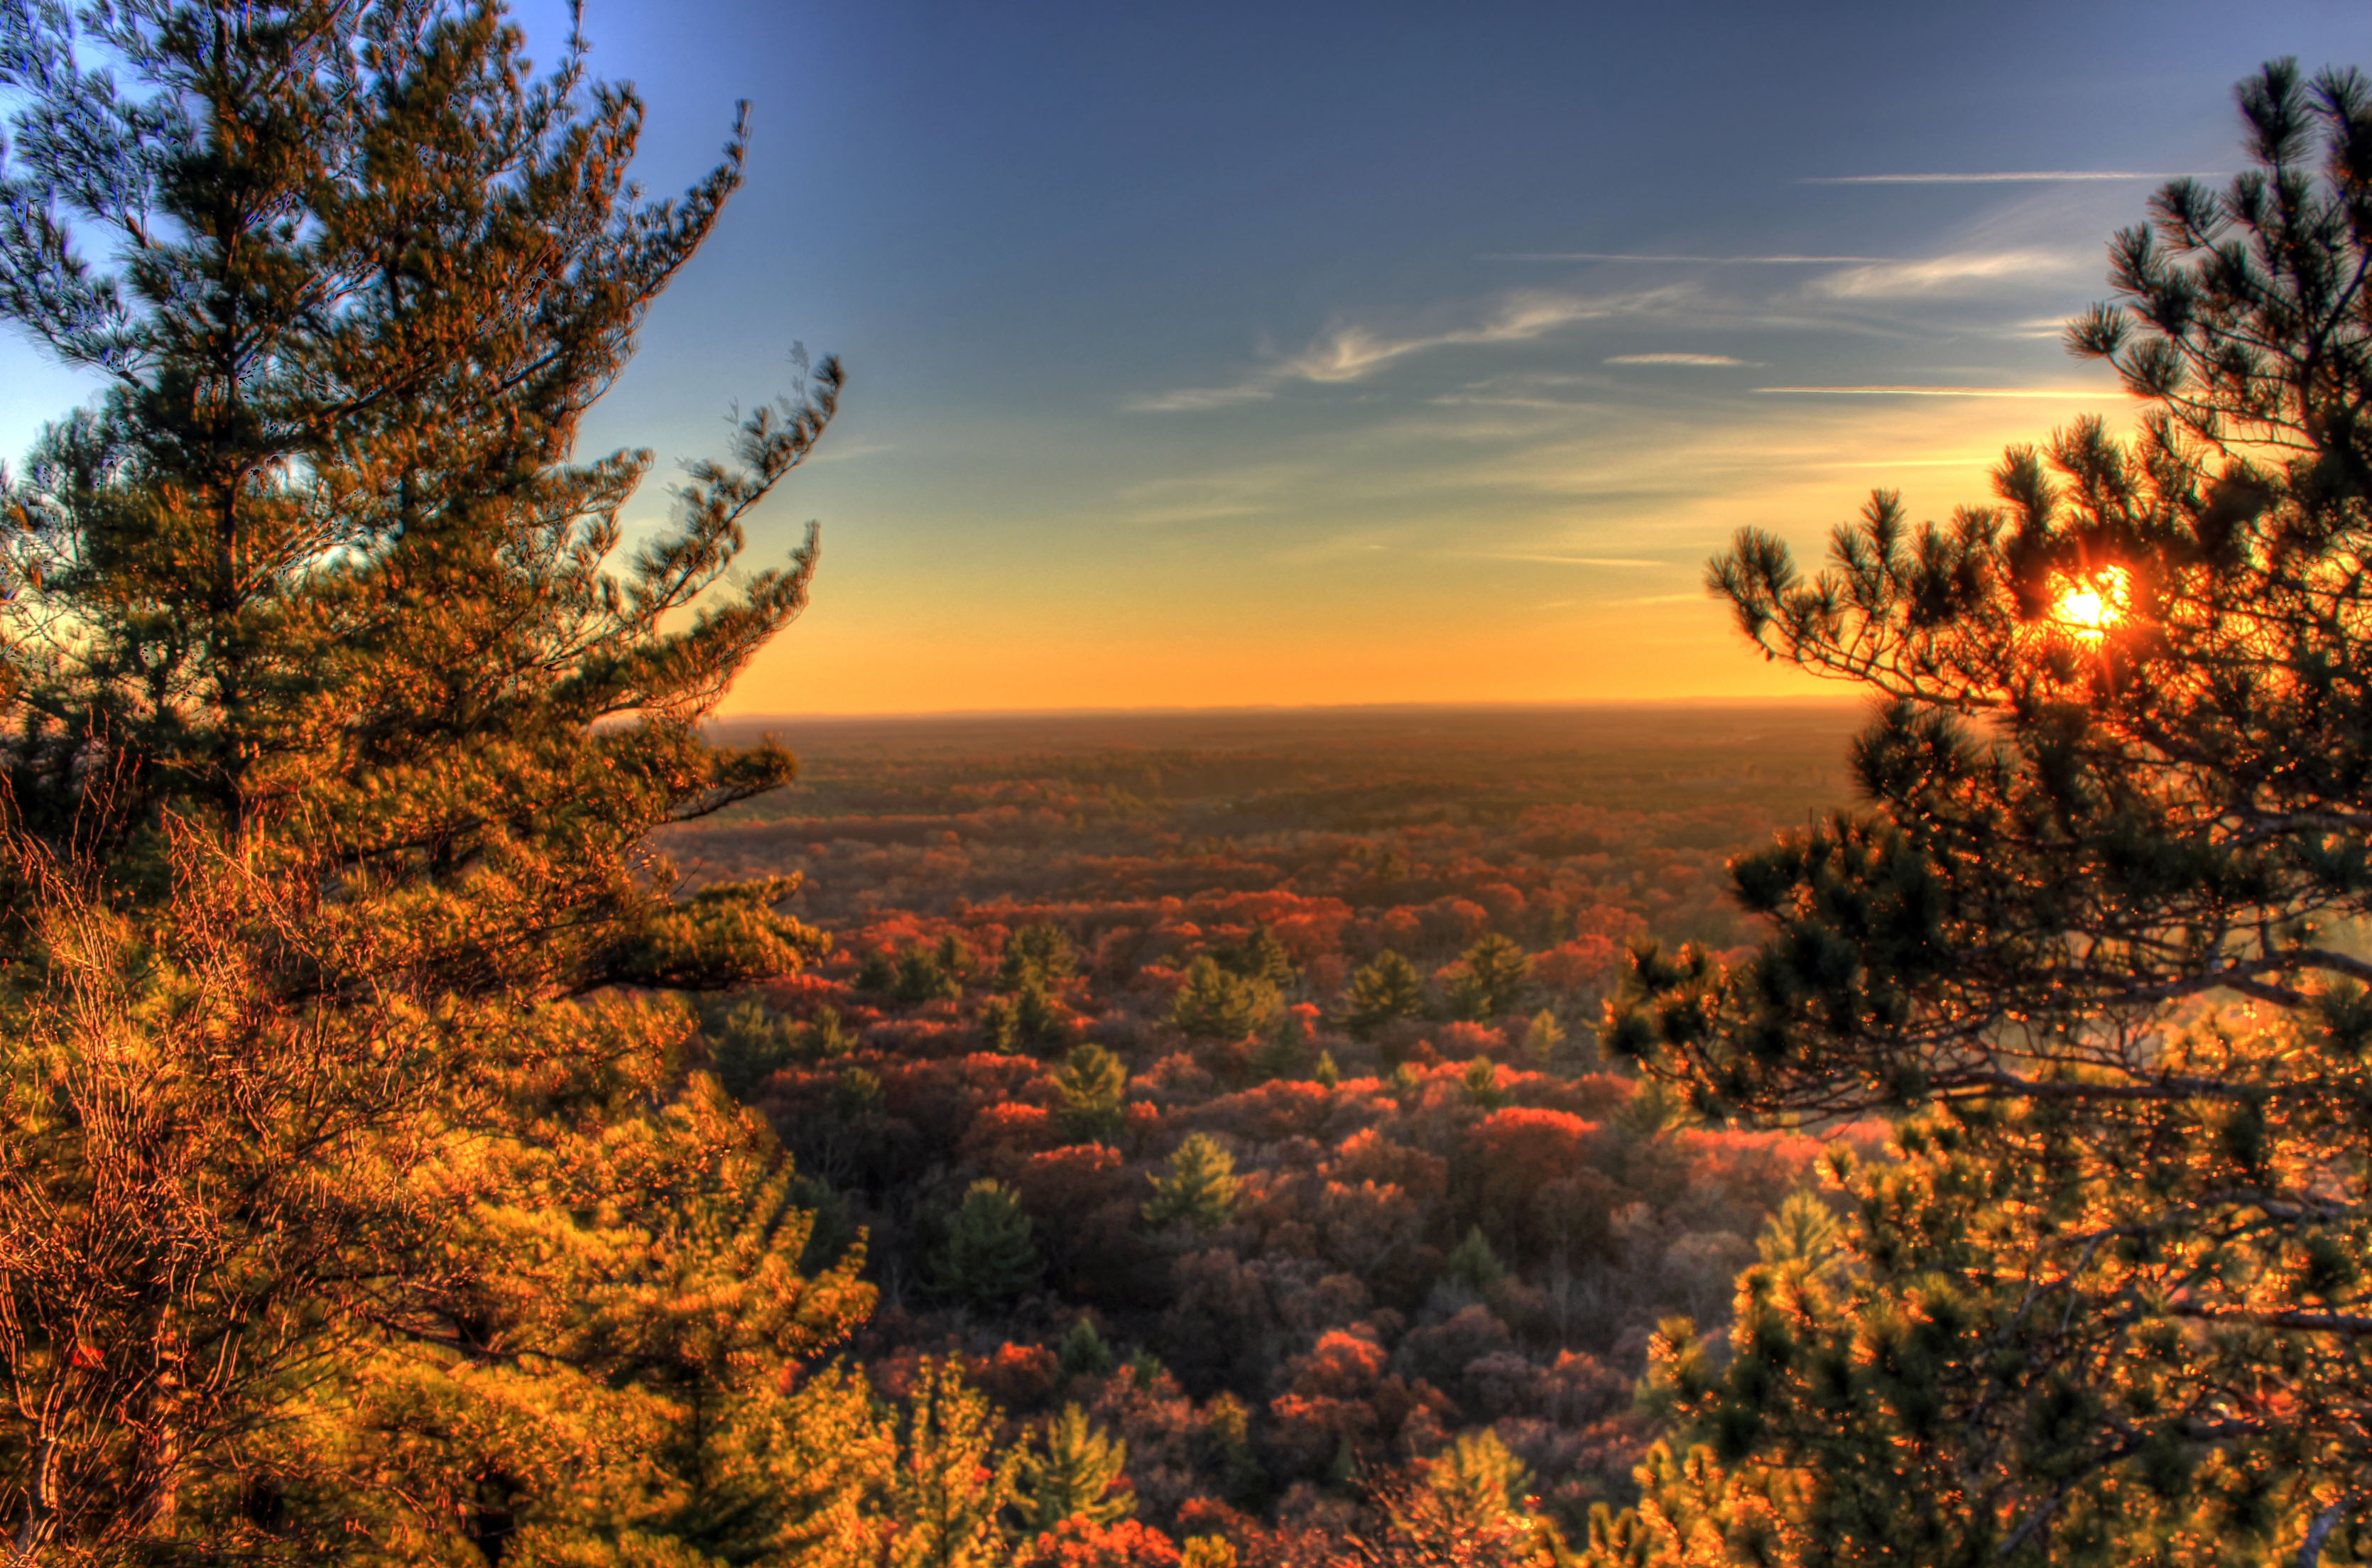 File:Gfp-wisconsin-roche-a-cri-forest-at-sunset.jpg - Wikimedia Commons